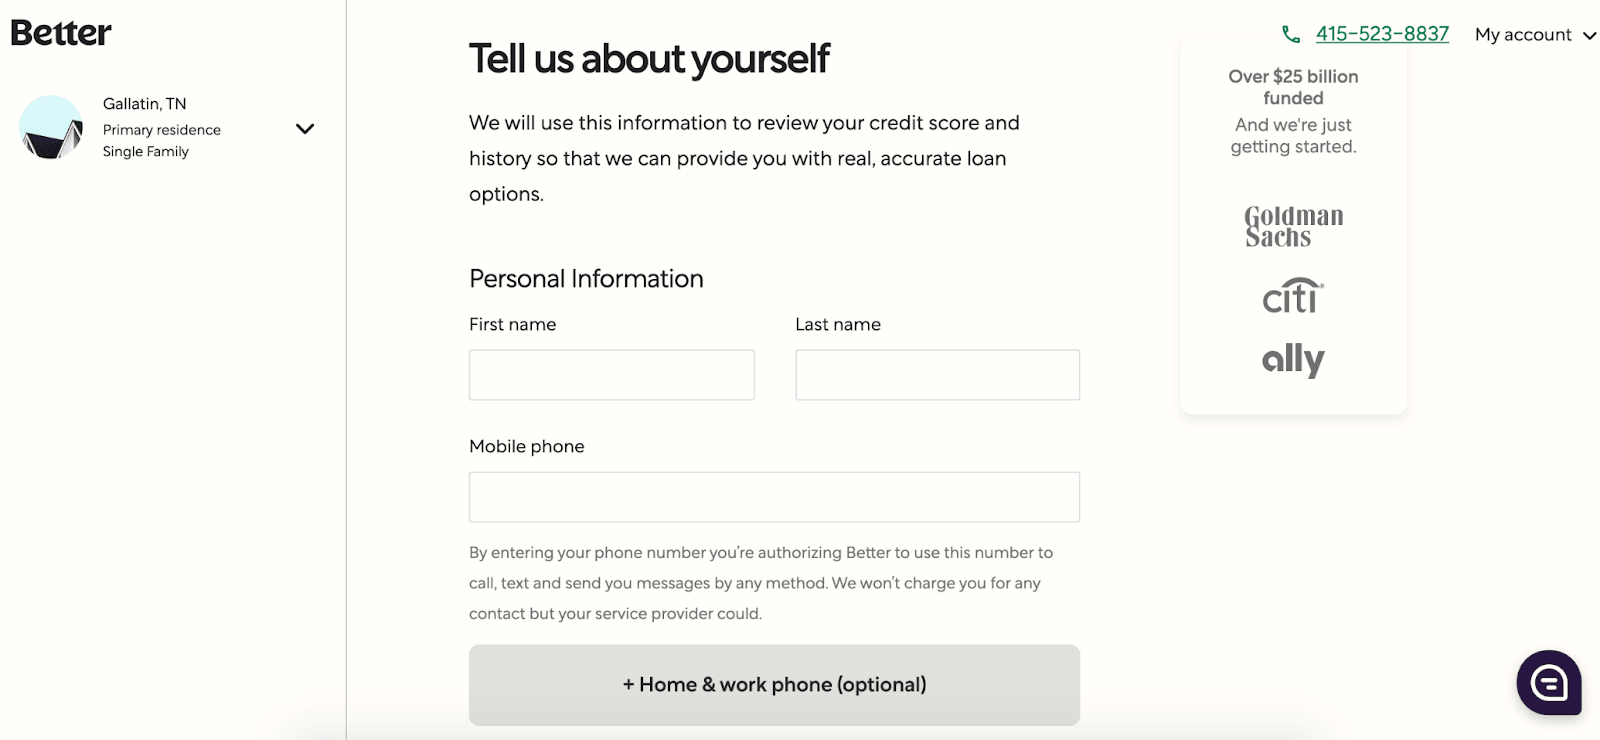 Better.com: Affordable Mortgages In An Easy-to-Use Platform - Tell us about yourself